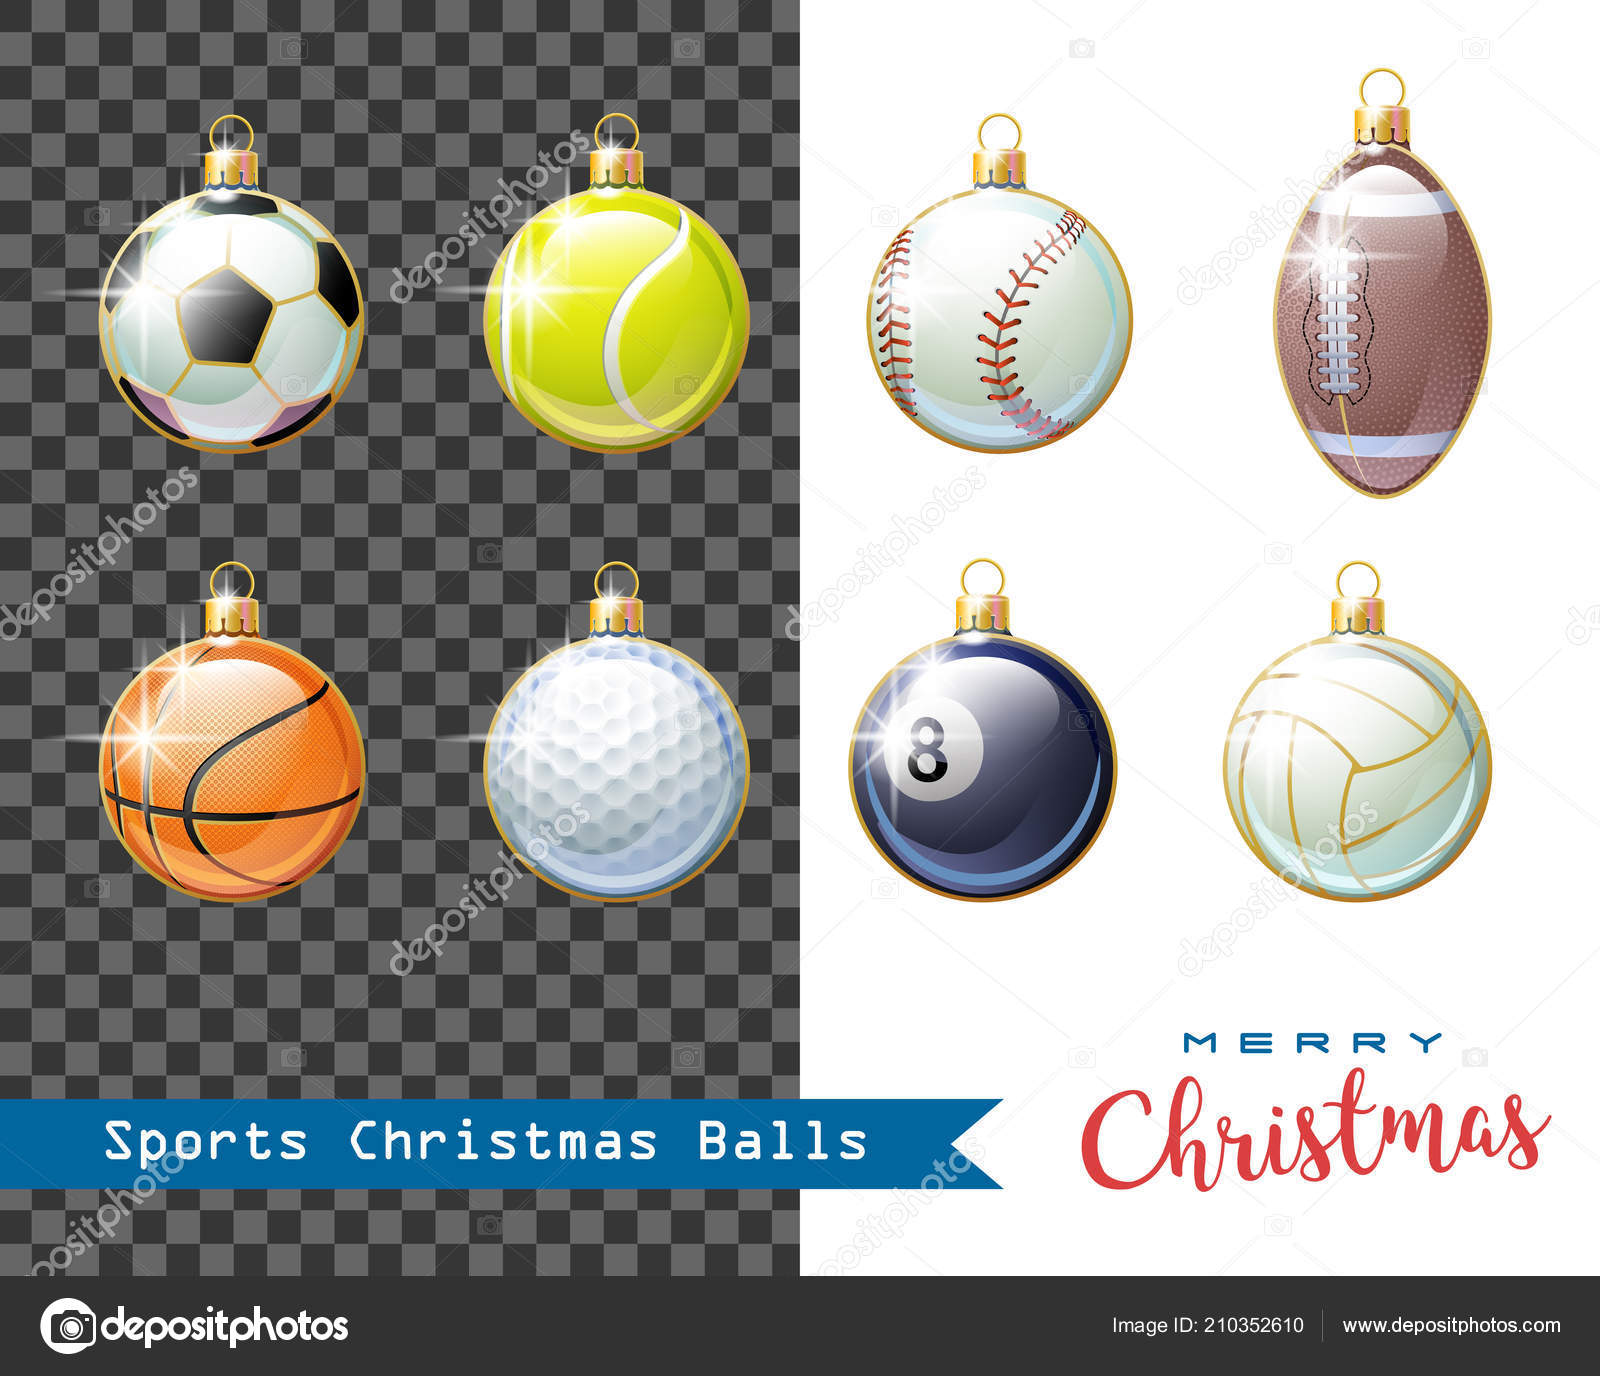 Merry Christmas! Collection of different Sports Christmas balls for your creative works. Soccer, Baseball, Basketball, Tennis, American Football, Rugby, ...